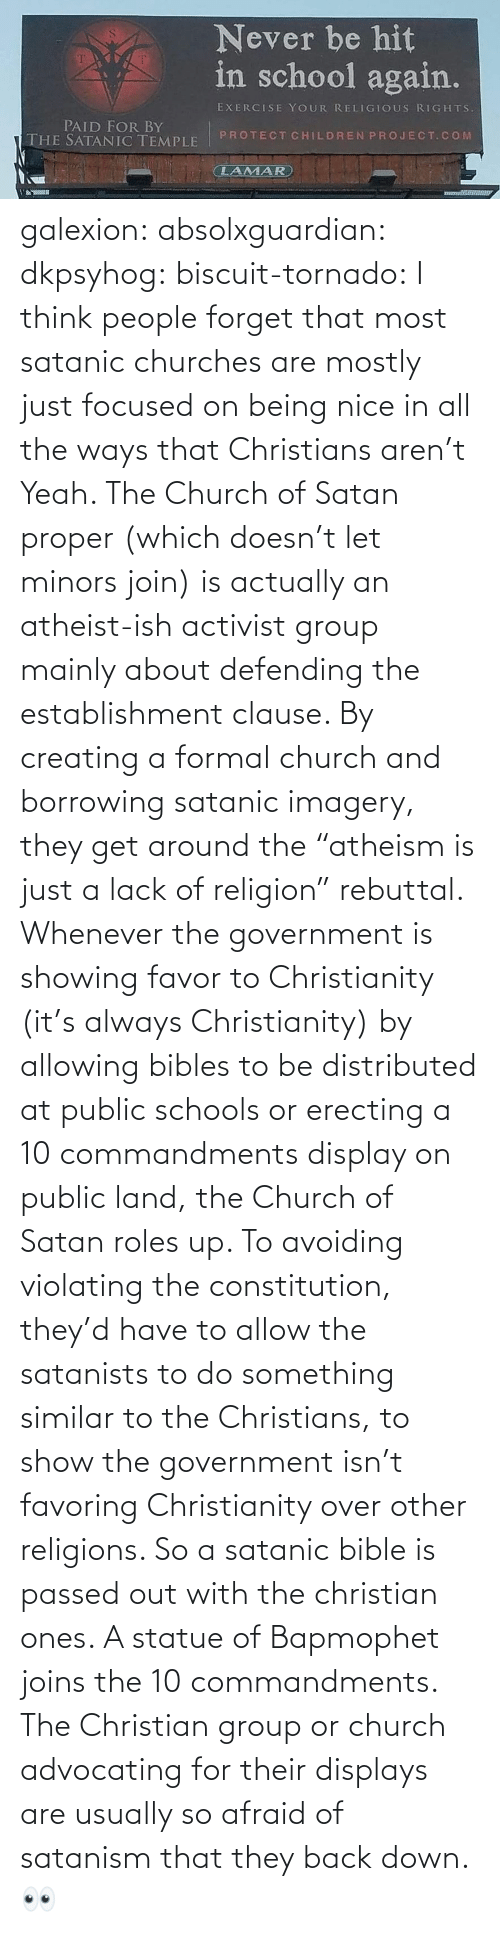 "Government: galexion:  absolxguardian:  dkpsyhog:  biscuit-tornado:     I think people forget that most satanic churches are mostly just focused on being nice in all the ways that Christians aren't  Yeah. The Church of Satan proper (which doesn't let minors join) is actually an atheist-ish activist group mainly about defending the establishment clause. By creating a formal church and borrowing satanic imagery, they get around the ""atheism is just a lack of religion"" rebuttal. Whenever the government is showing favor to Christianity (it's always Christianity) by allowing bibles to be distributed at public schools or erecting a 10 commandments display on public land, the Church of Satan roles up. To avoiding violating the constitution, they'd have to allow the satanists to do something similar to the Christians, to show the government isn't favoring Christianity over other religions. So a satanic bible is passed out with the christian ones. A statue of Bapmophet joins the 10 commandments. The Christian group or church advocating for their displays are usually so afraid of satanism that they back down.   👀"